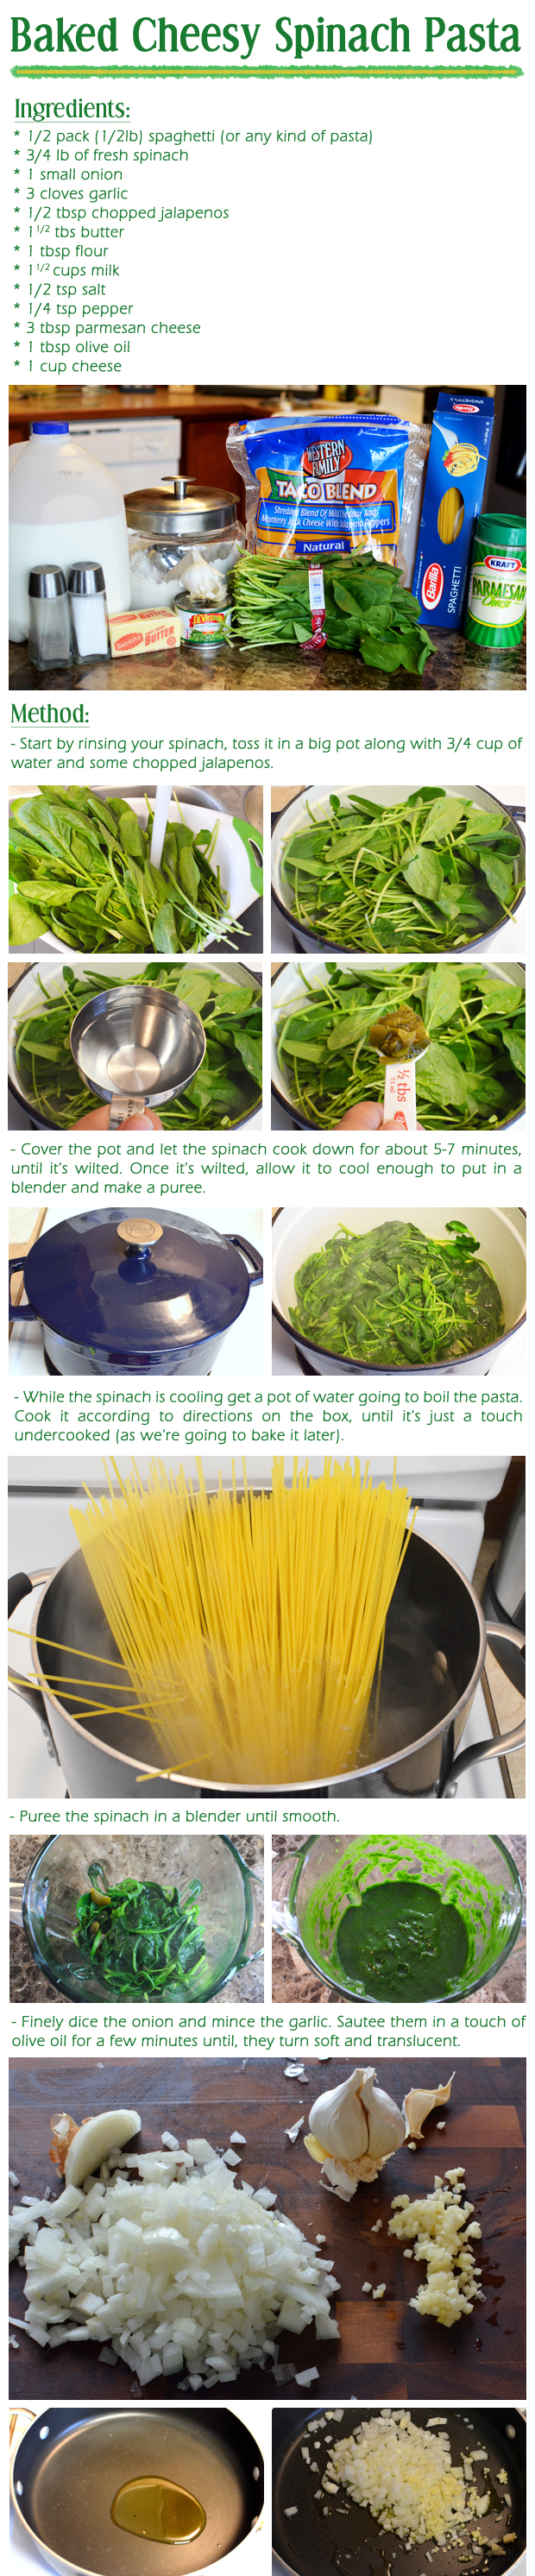 Baked Cheesy Spinach Pasta Recipe Part-1